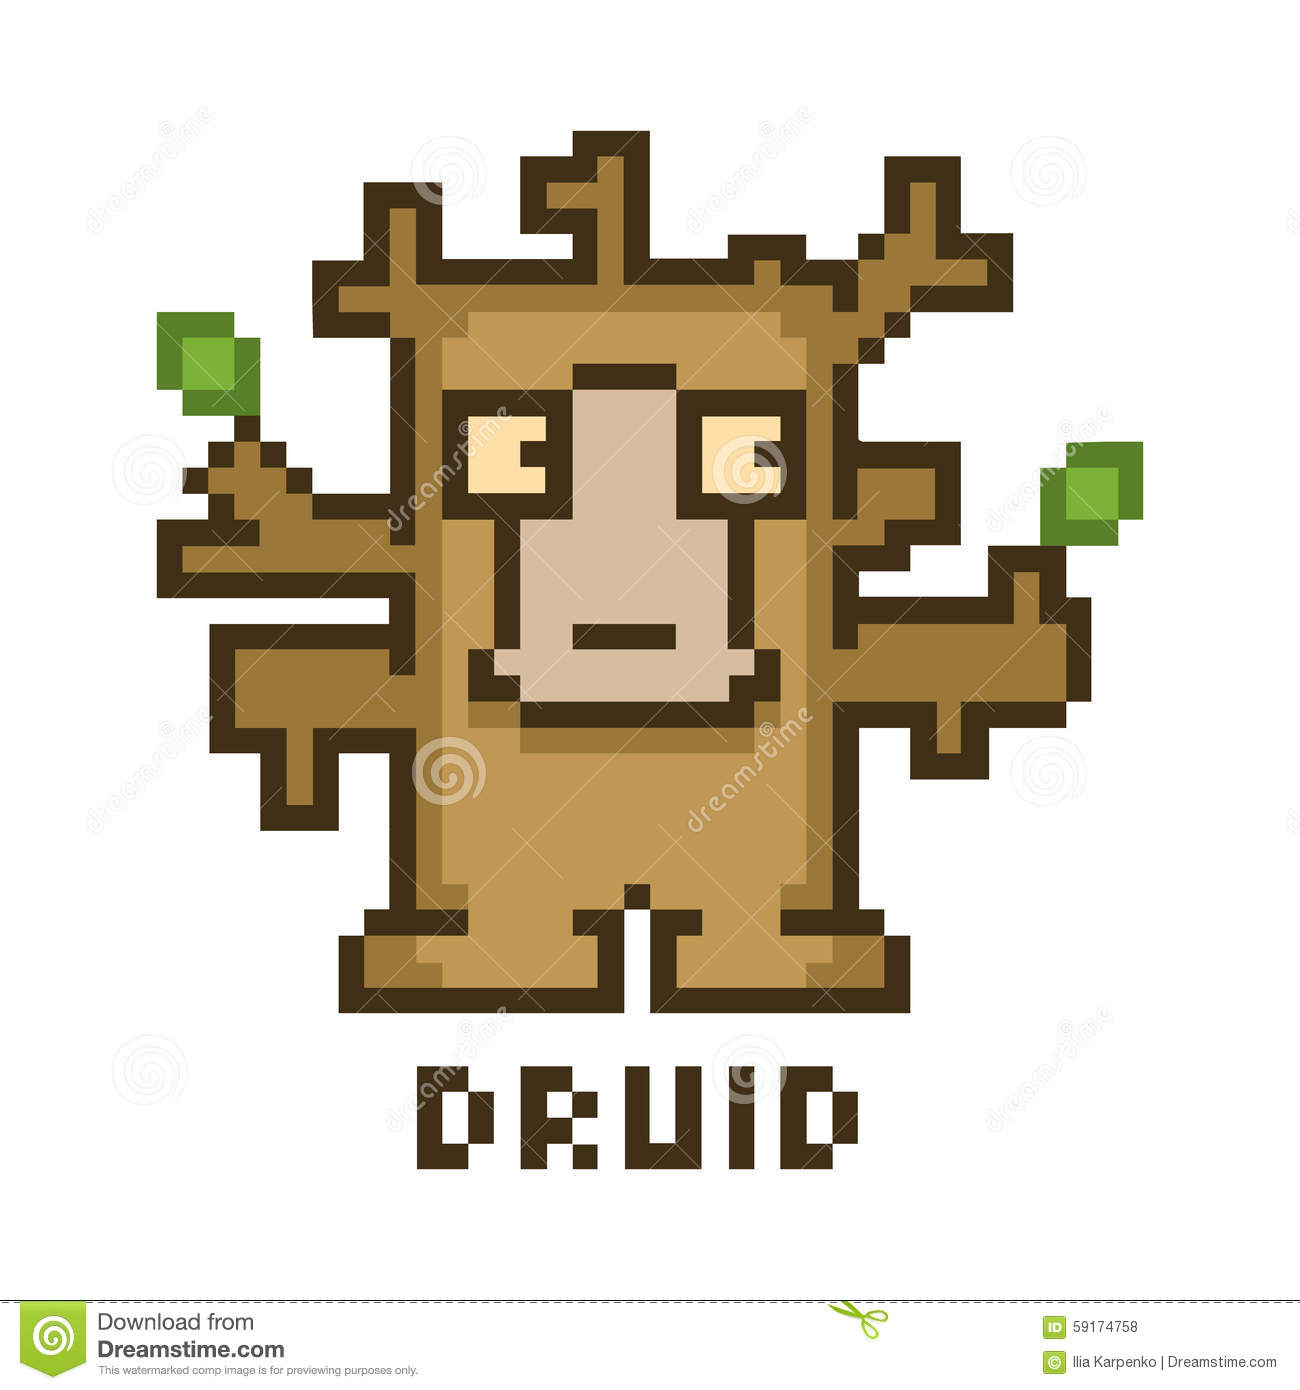 Druid stock illustrations 727 druid stock illustrations vectors pixel druid for 8 bit video games and design royalty free stock photos nvjuhfo Choice Image